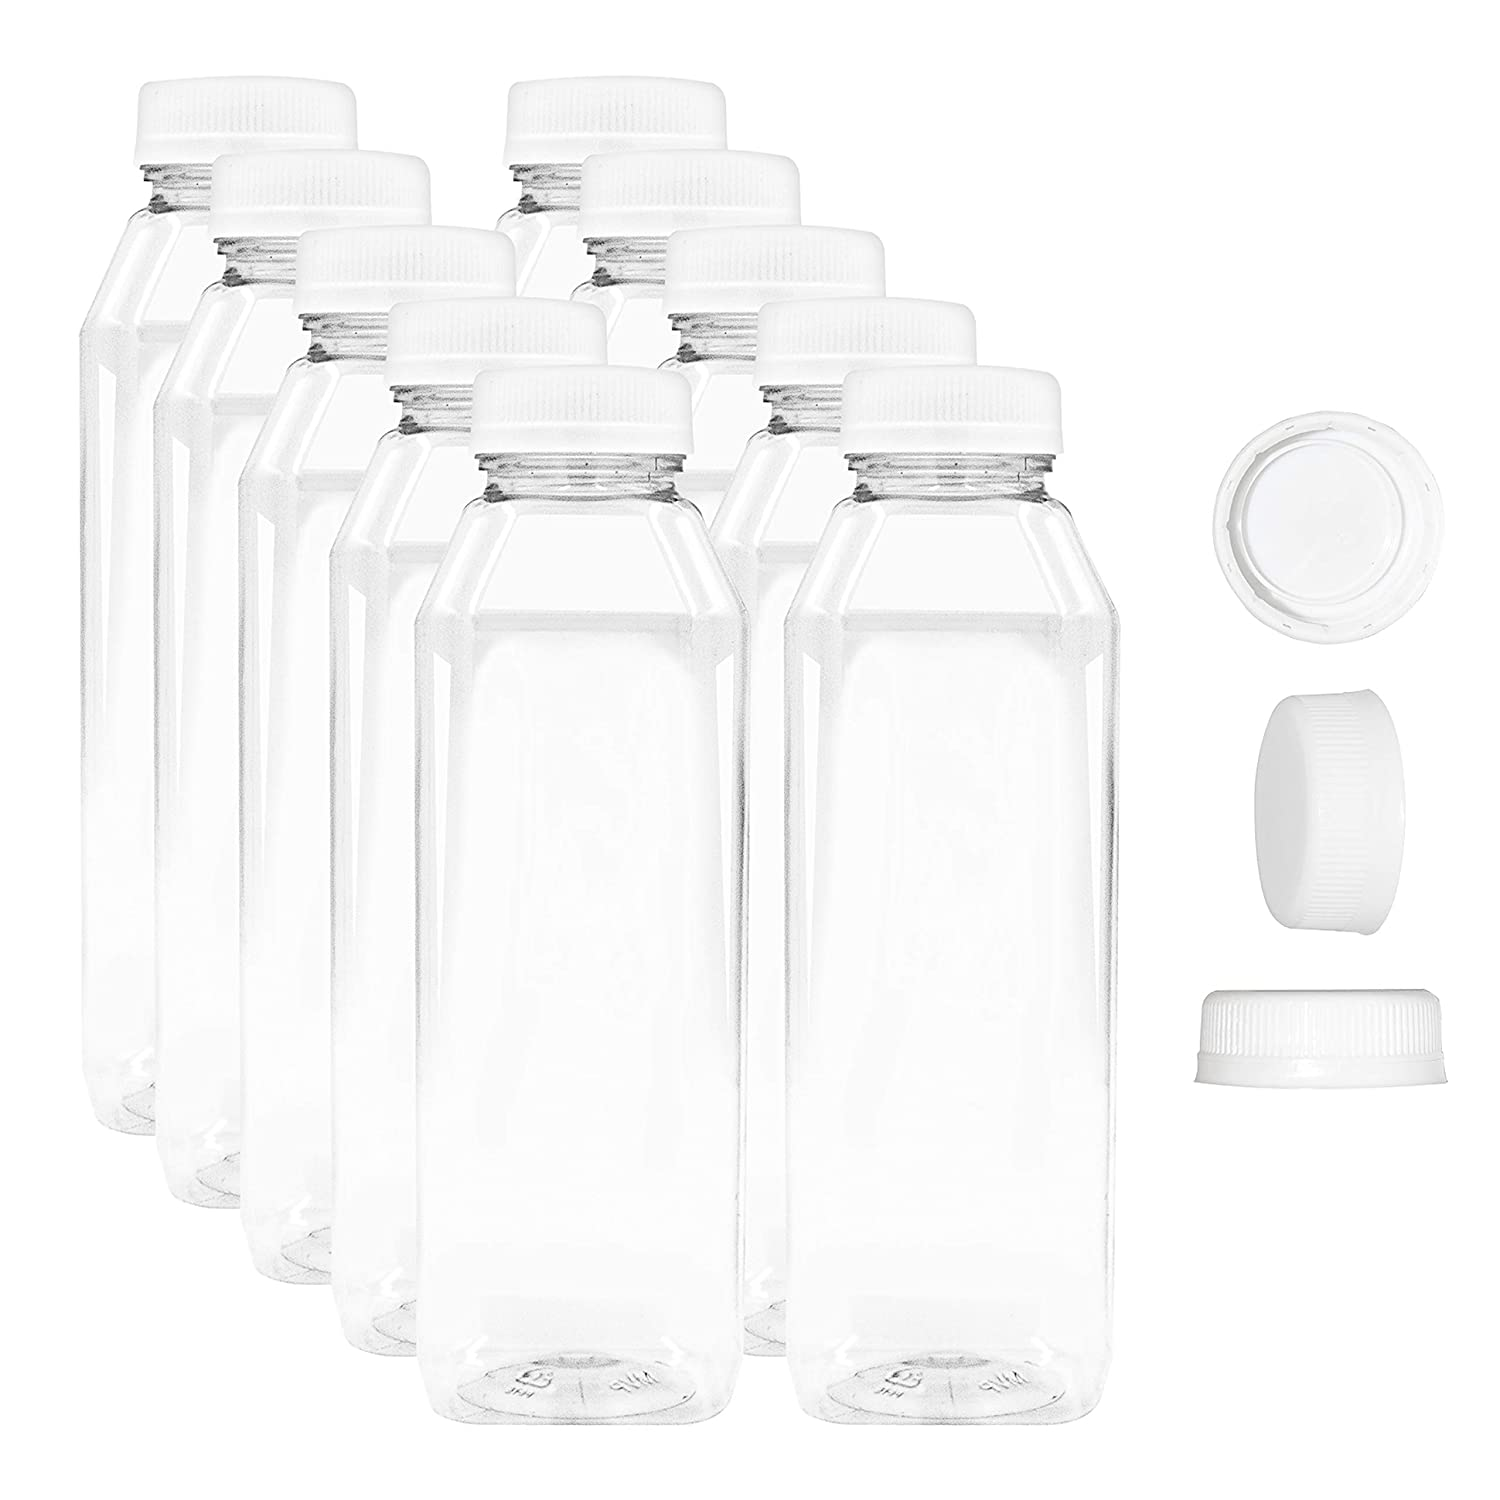 12 Ounce Empty Juice Bottles - Set of 10 Reusable Clear Plastic Disposable Milk Containers with White Tamper Proof Caps